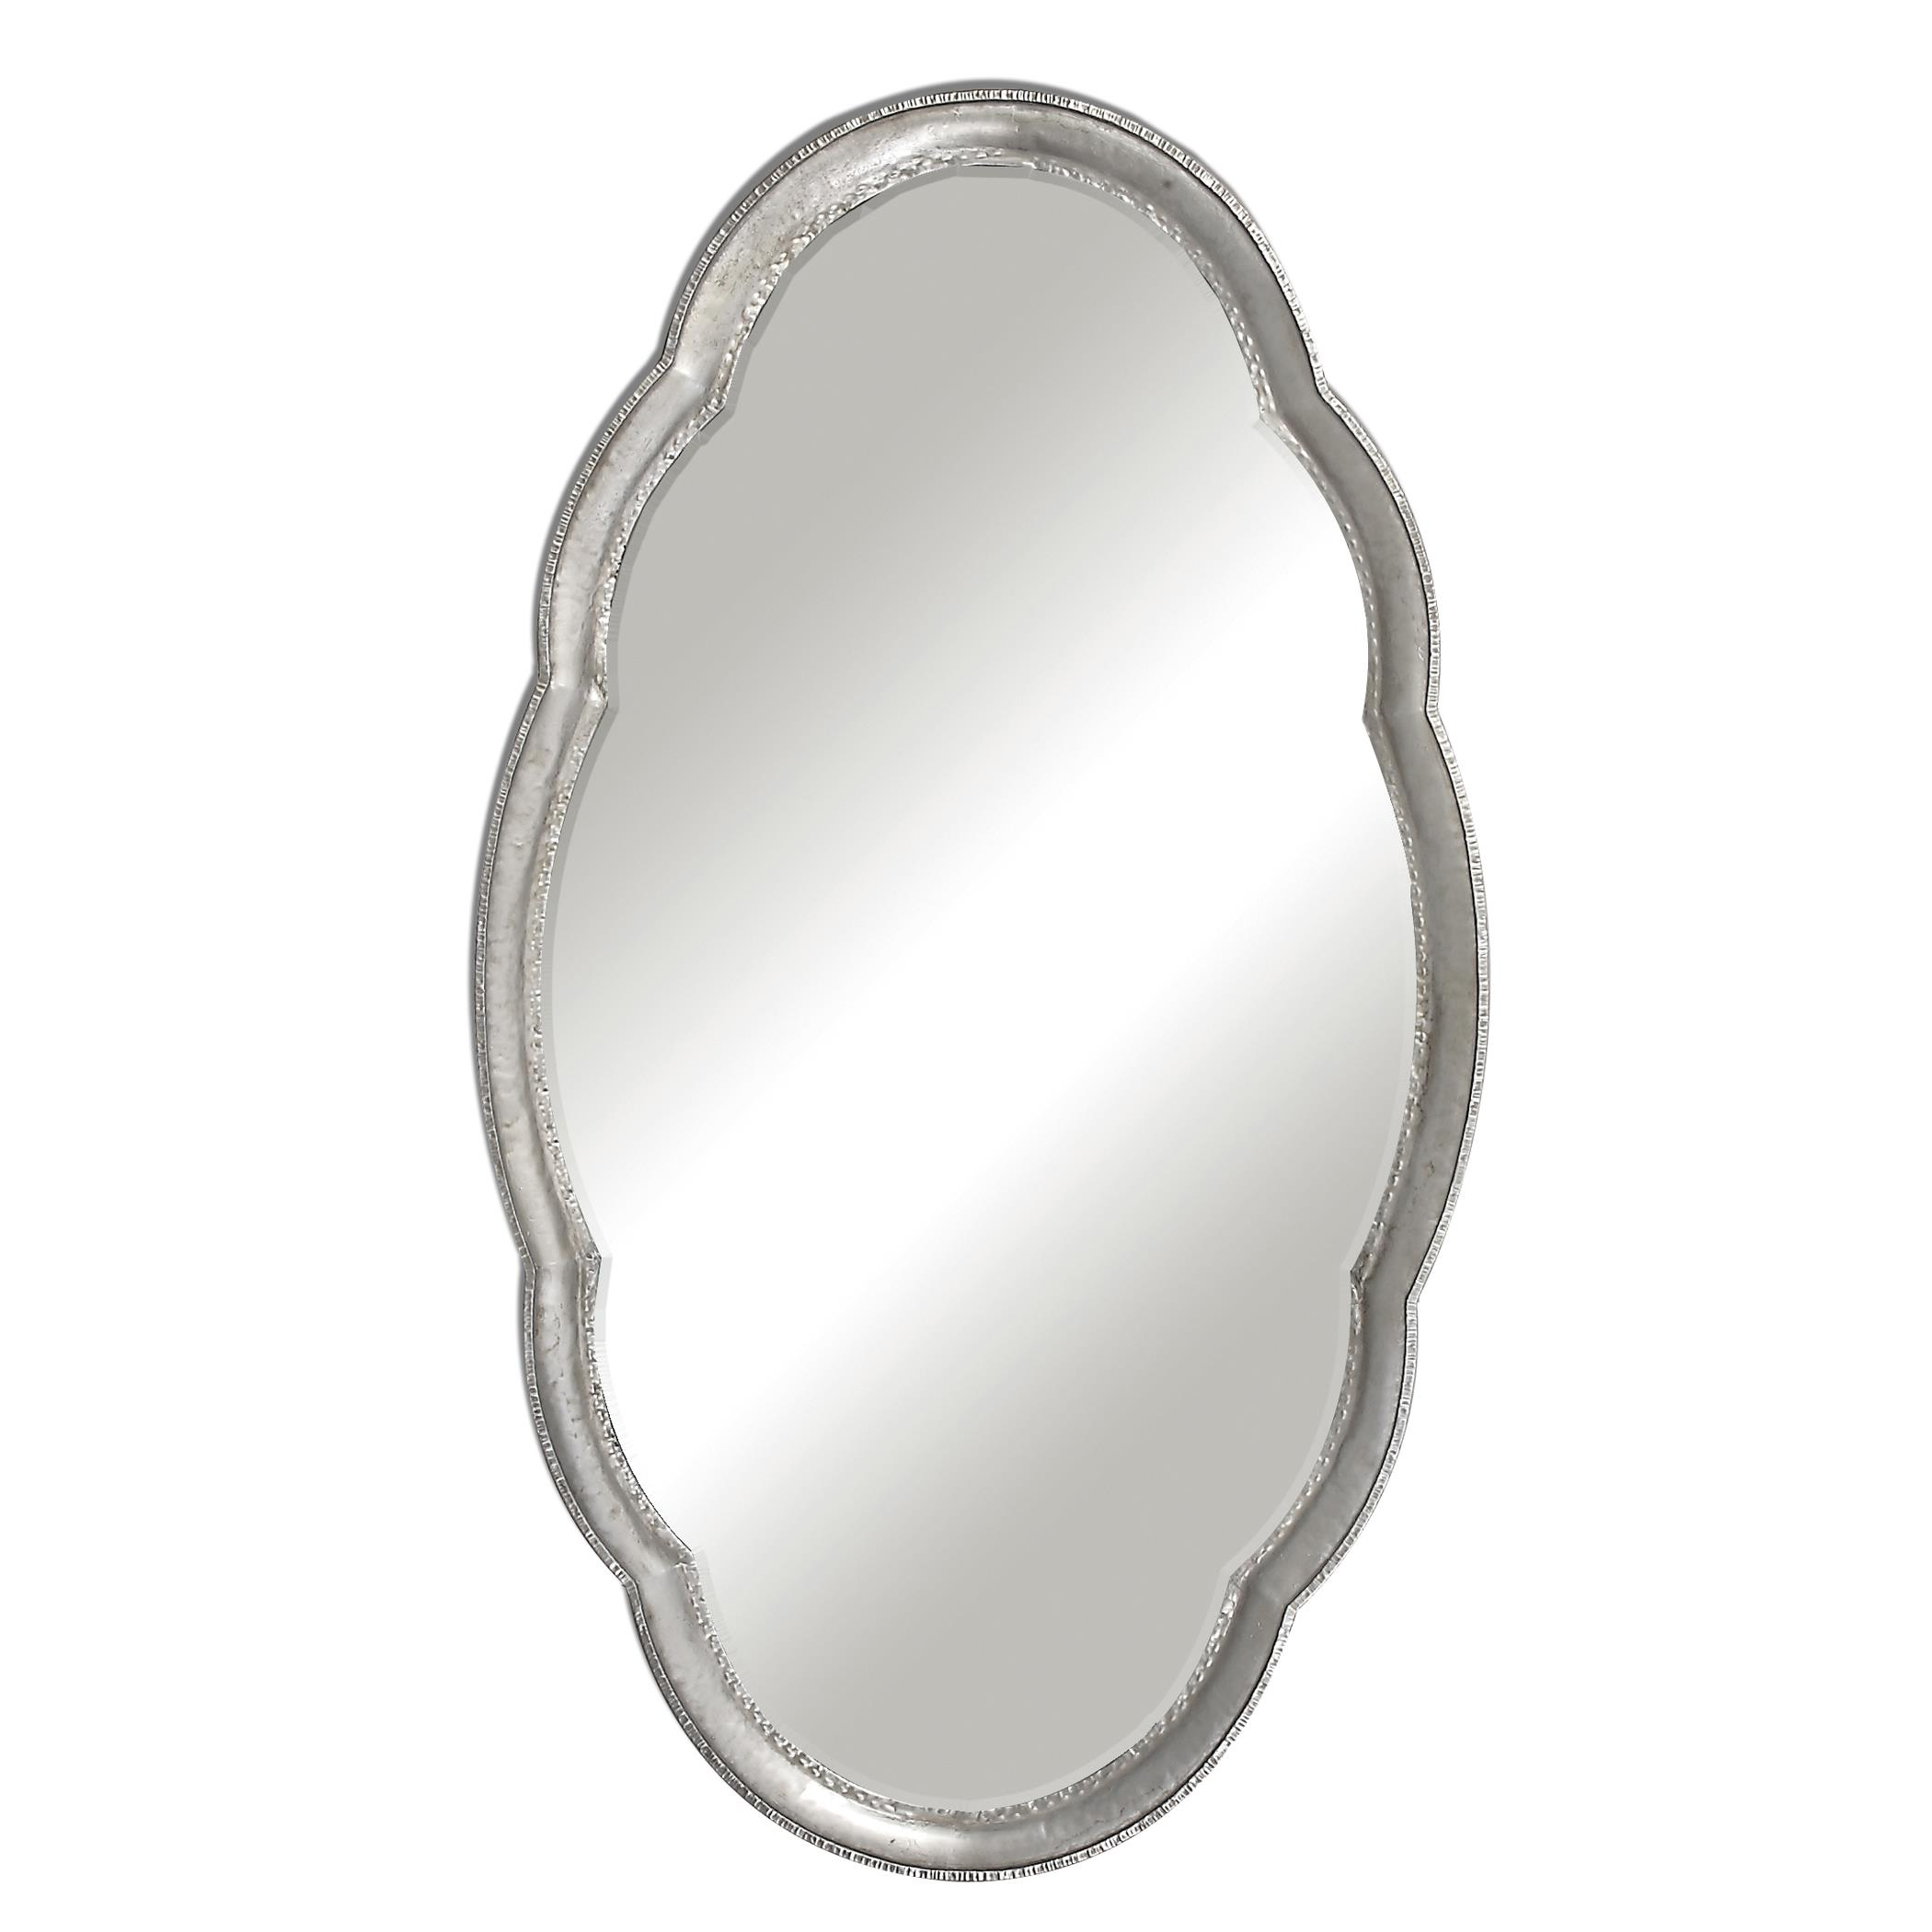 Uttermost Mirrors Guadiana Oversized Oval Mirror - Item Number: 12925